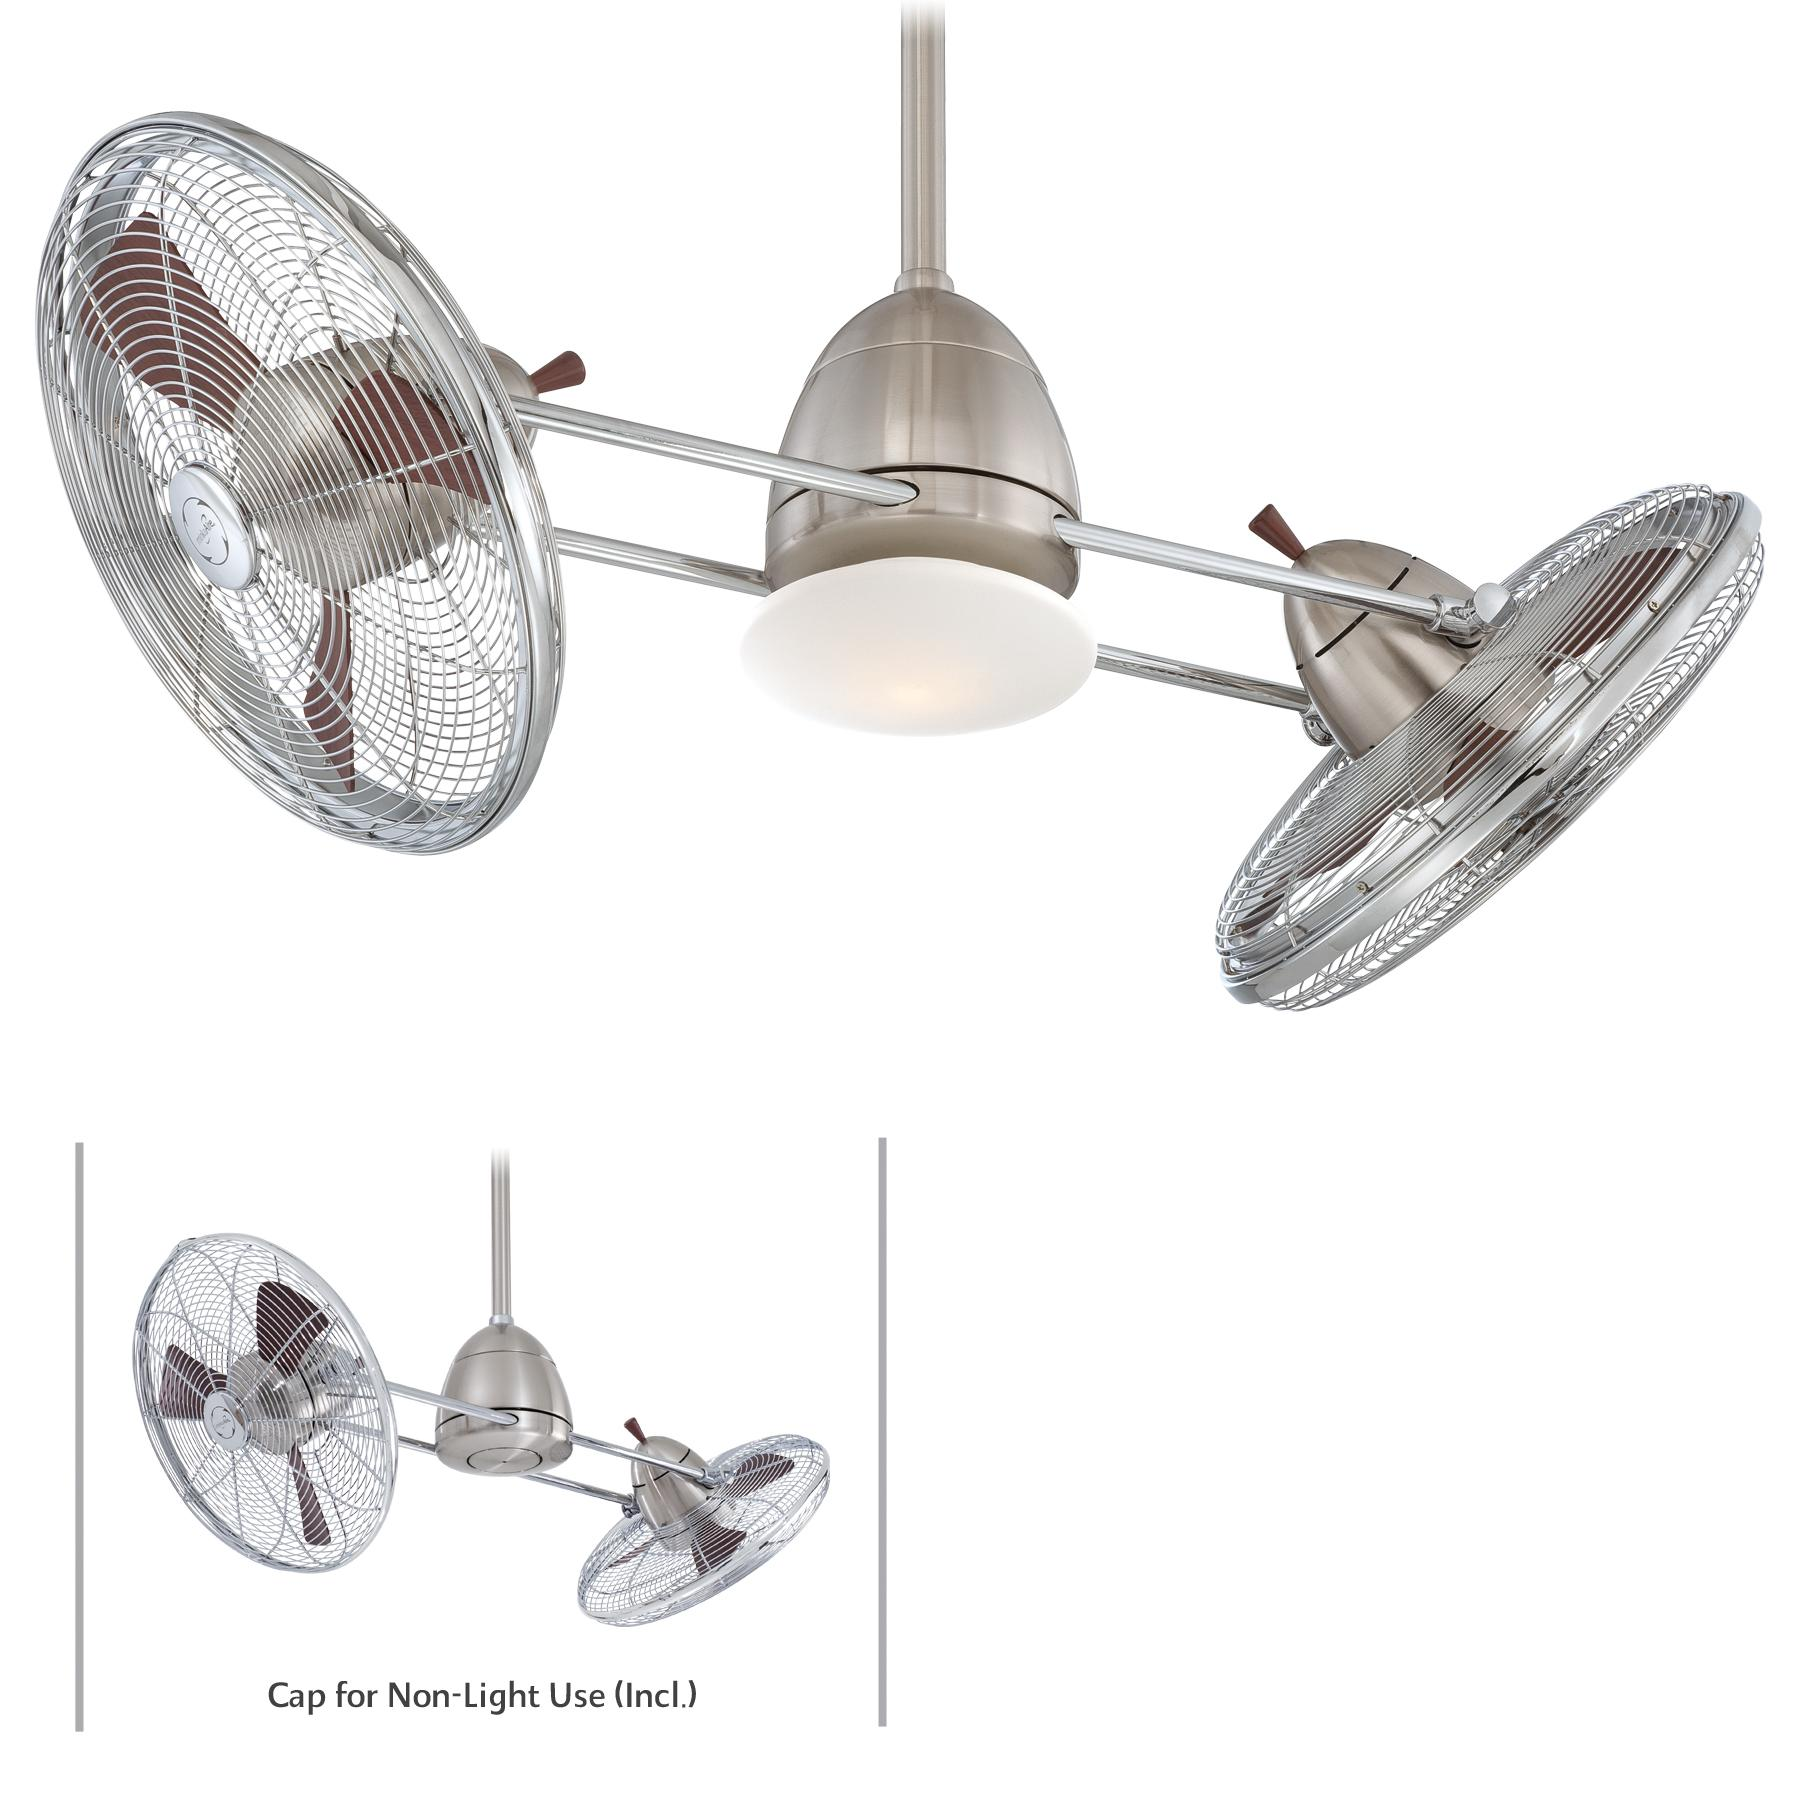 Bathroom Lighting Code Requirements ceiling fans | light source etc. | page 2